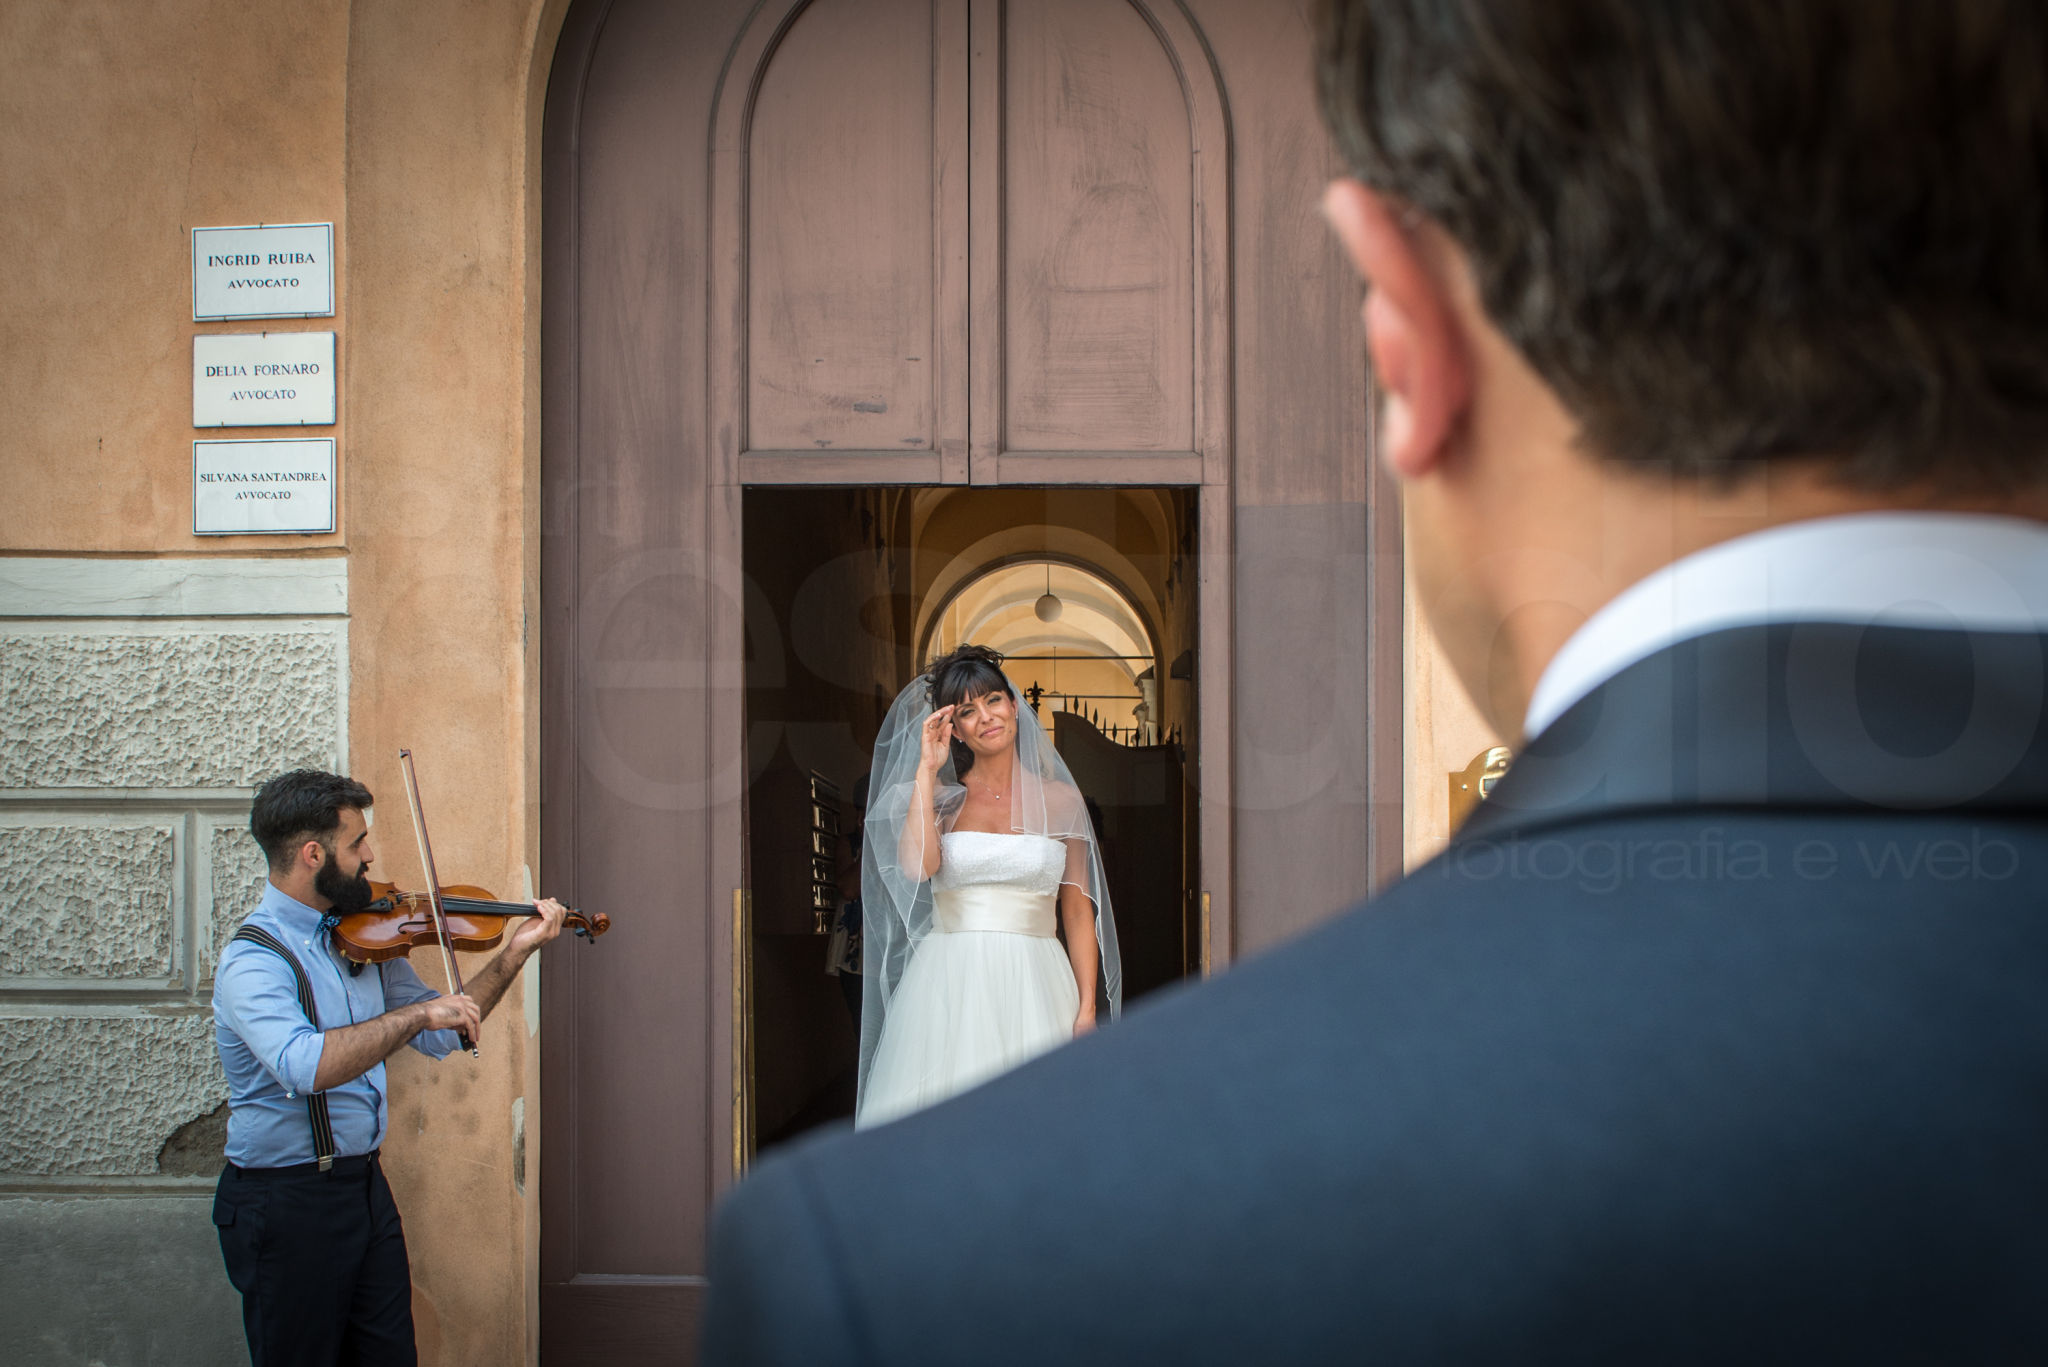 https://lnx.mirkone.it/wp-content/uploads/2015/07/fotografo-matrimoni-faenza-0016.jpg